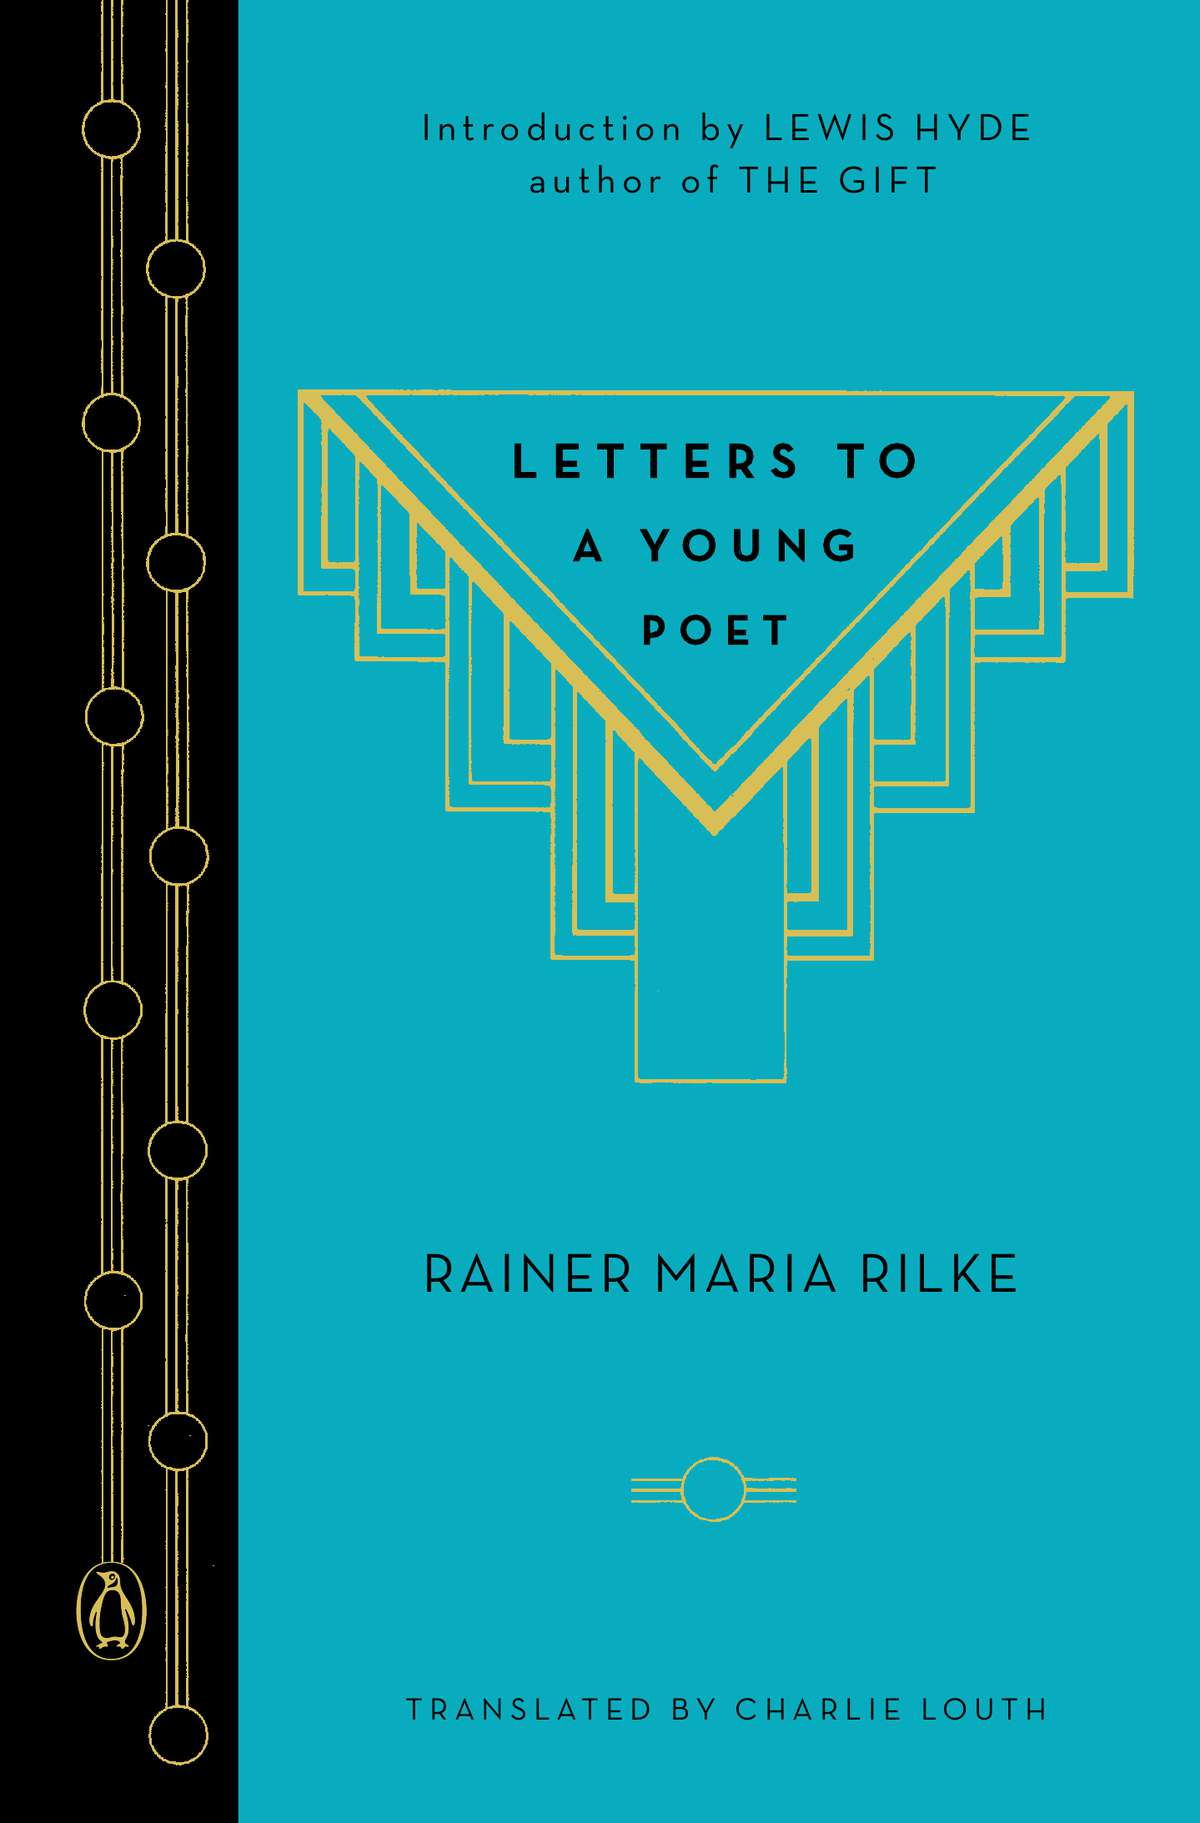 Letters_to_a_Young_Poet1.jpg